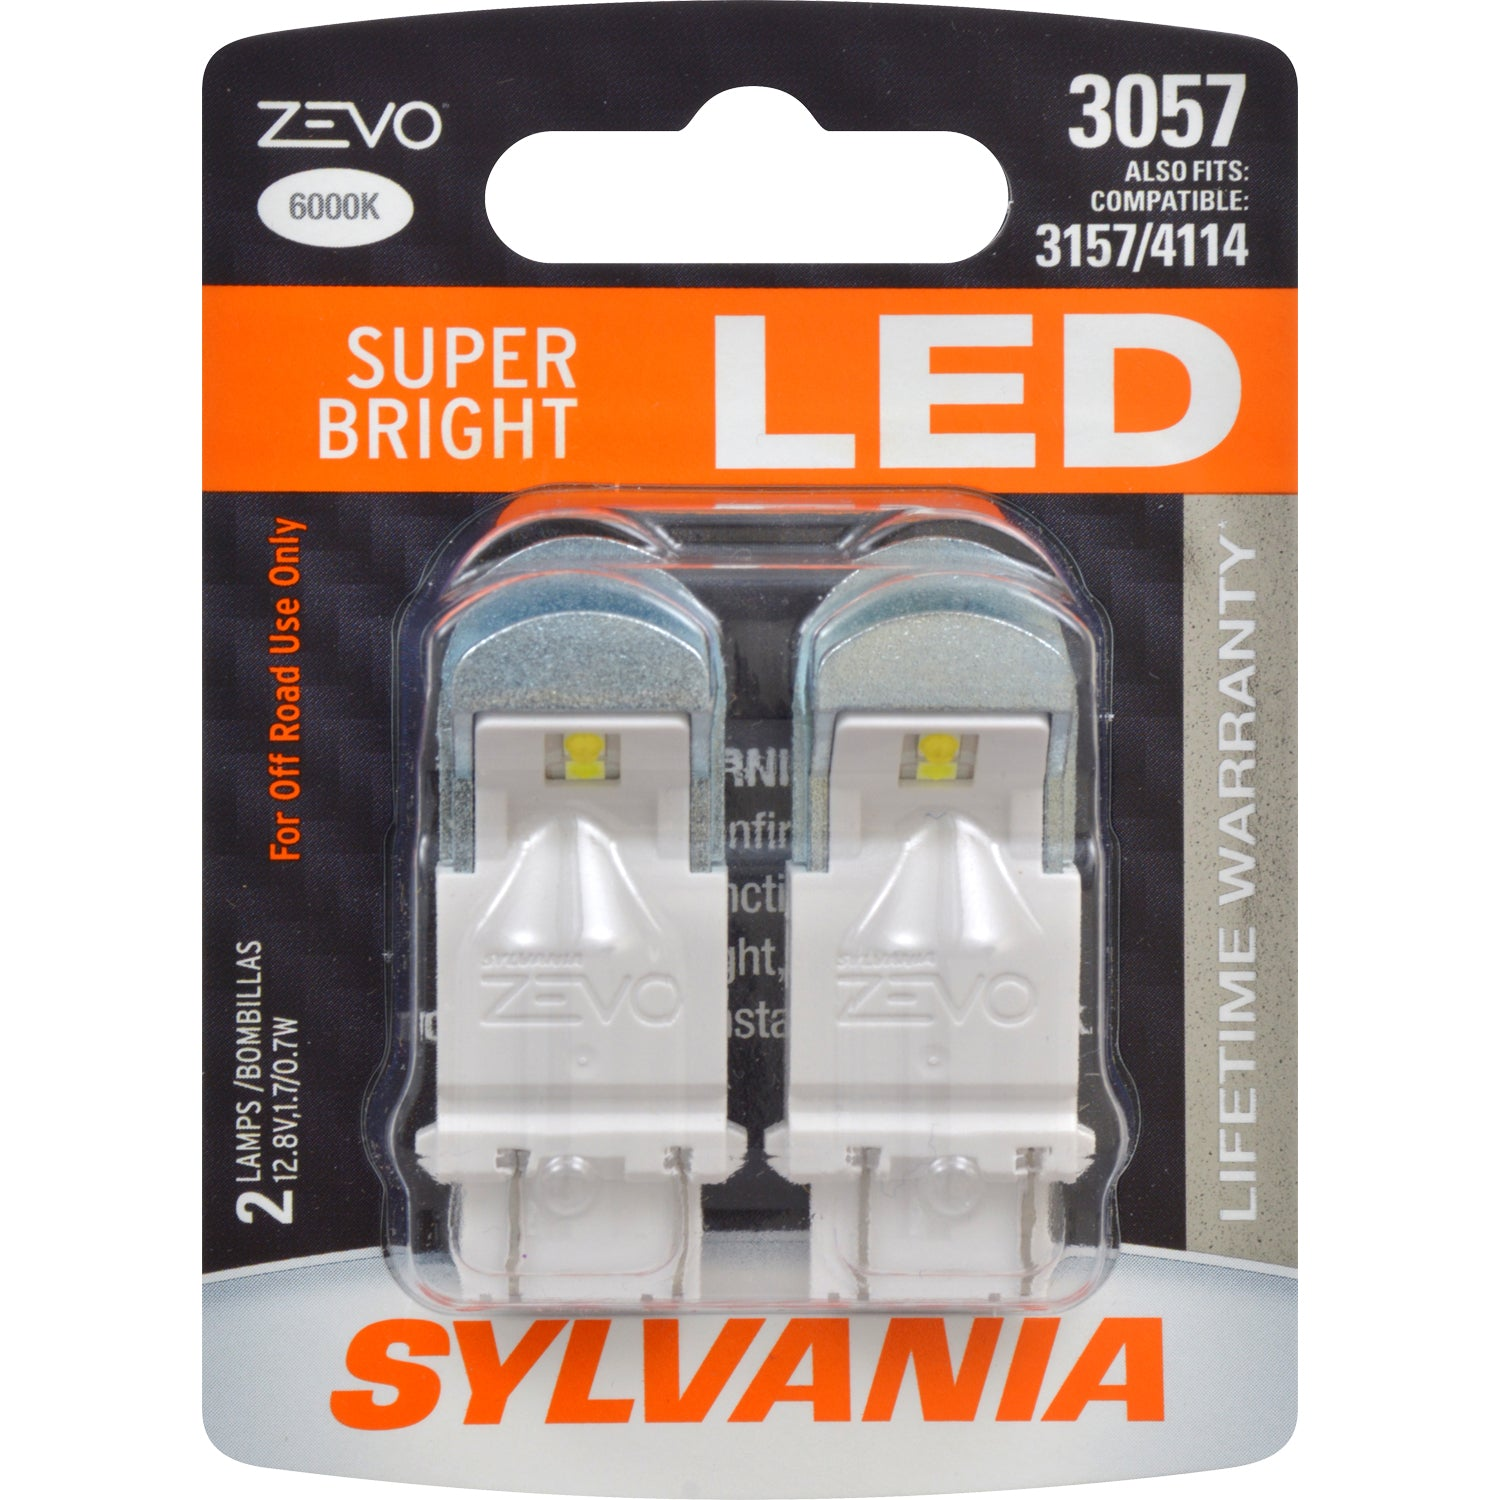 2-PK SYLVANIA 3057 LED ZEVO Super Bright Automotive Light Bulb